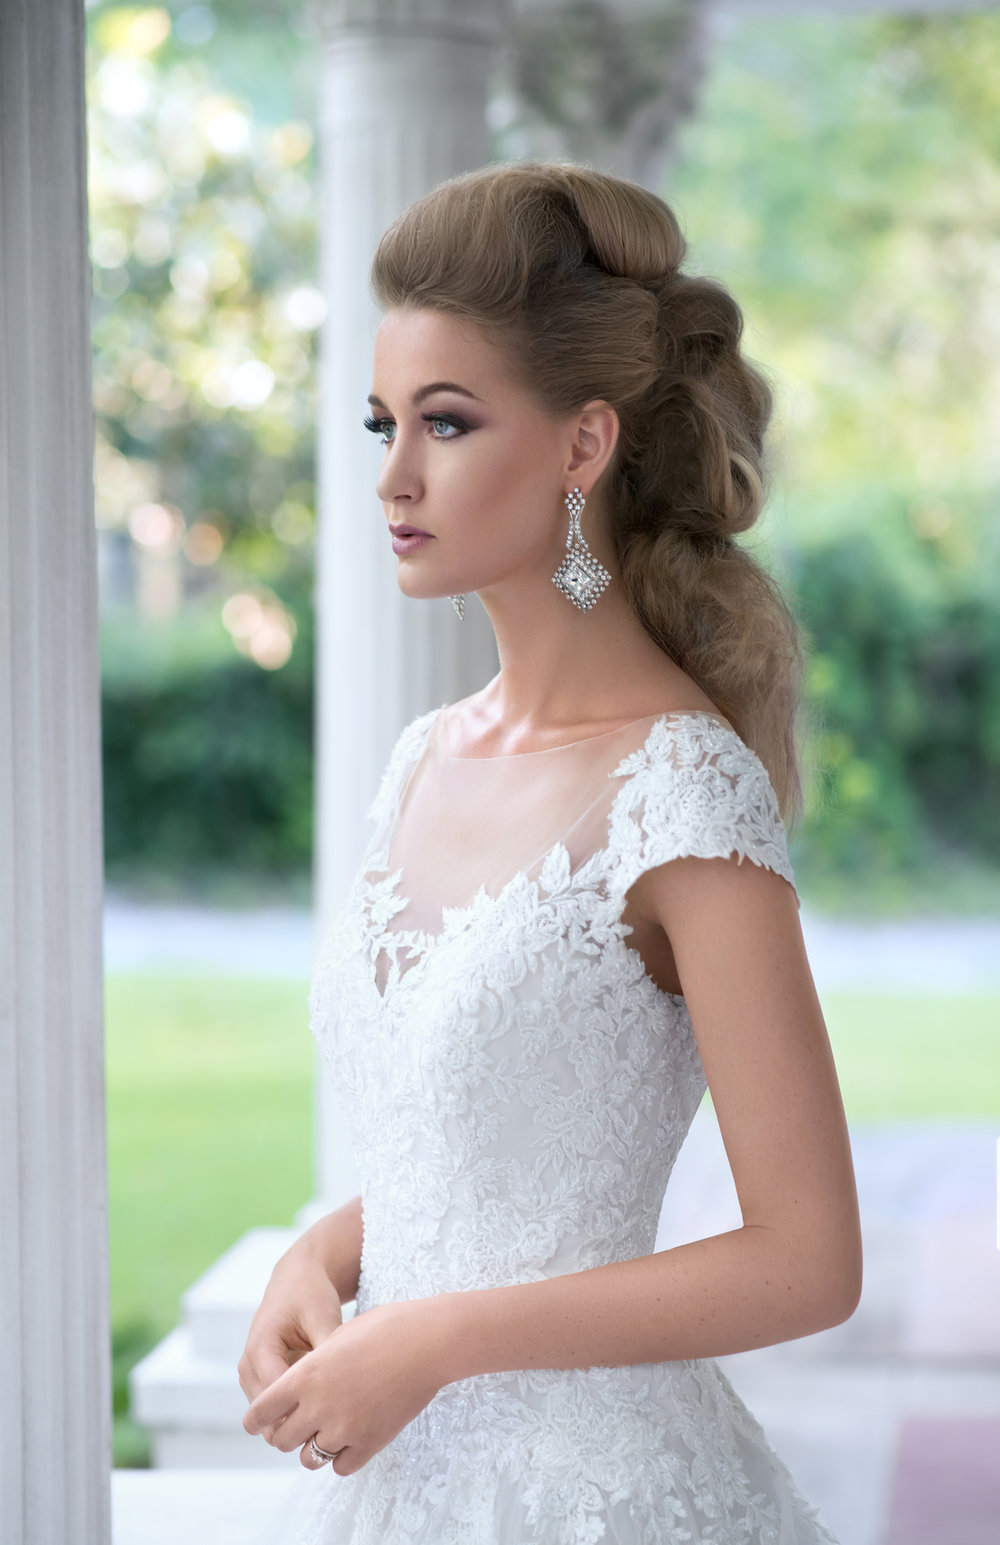 LUXURY BRIDAL - The Ultimate Beauty ExperienceHair- Skin- Nail Care